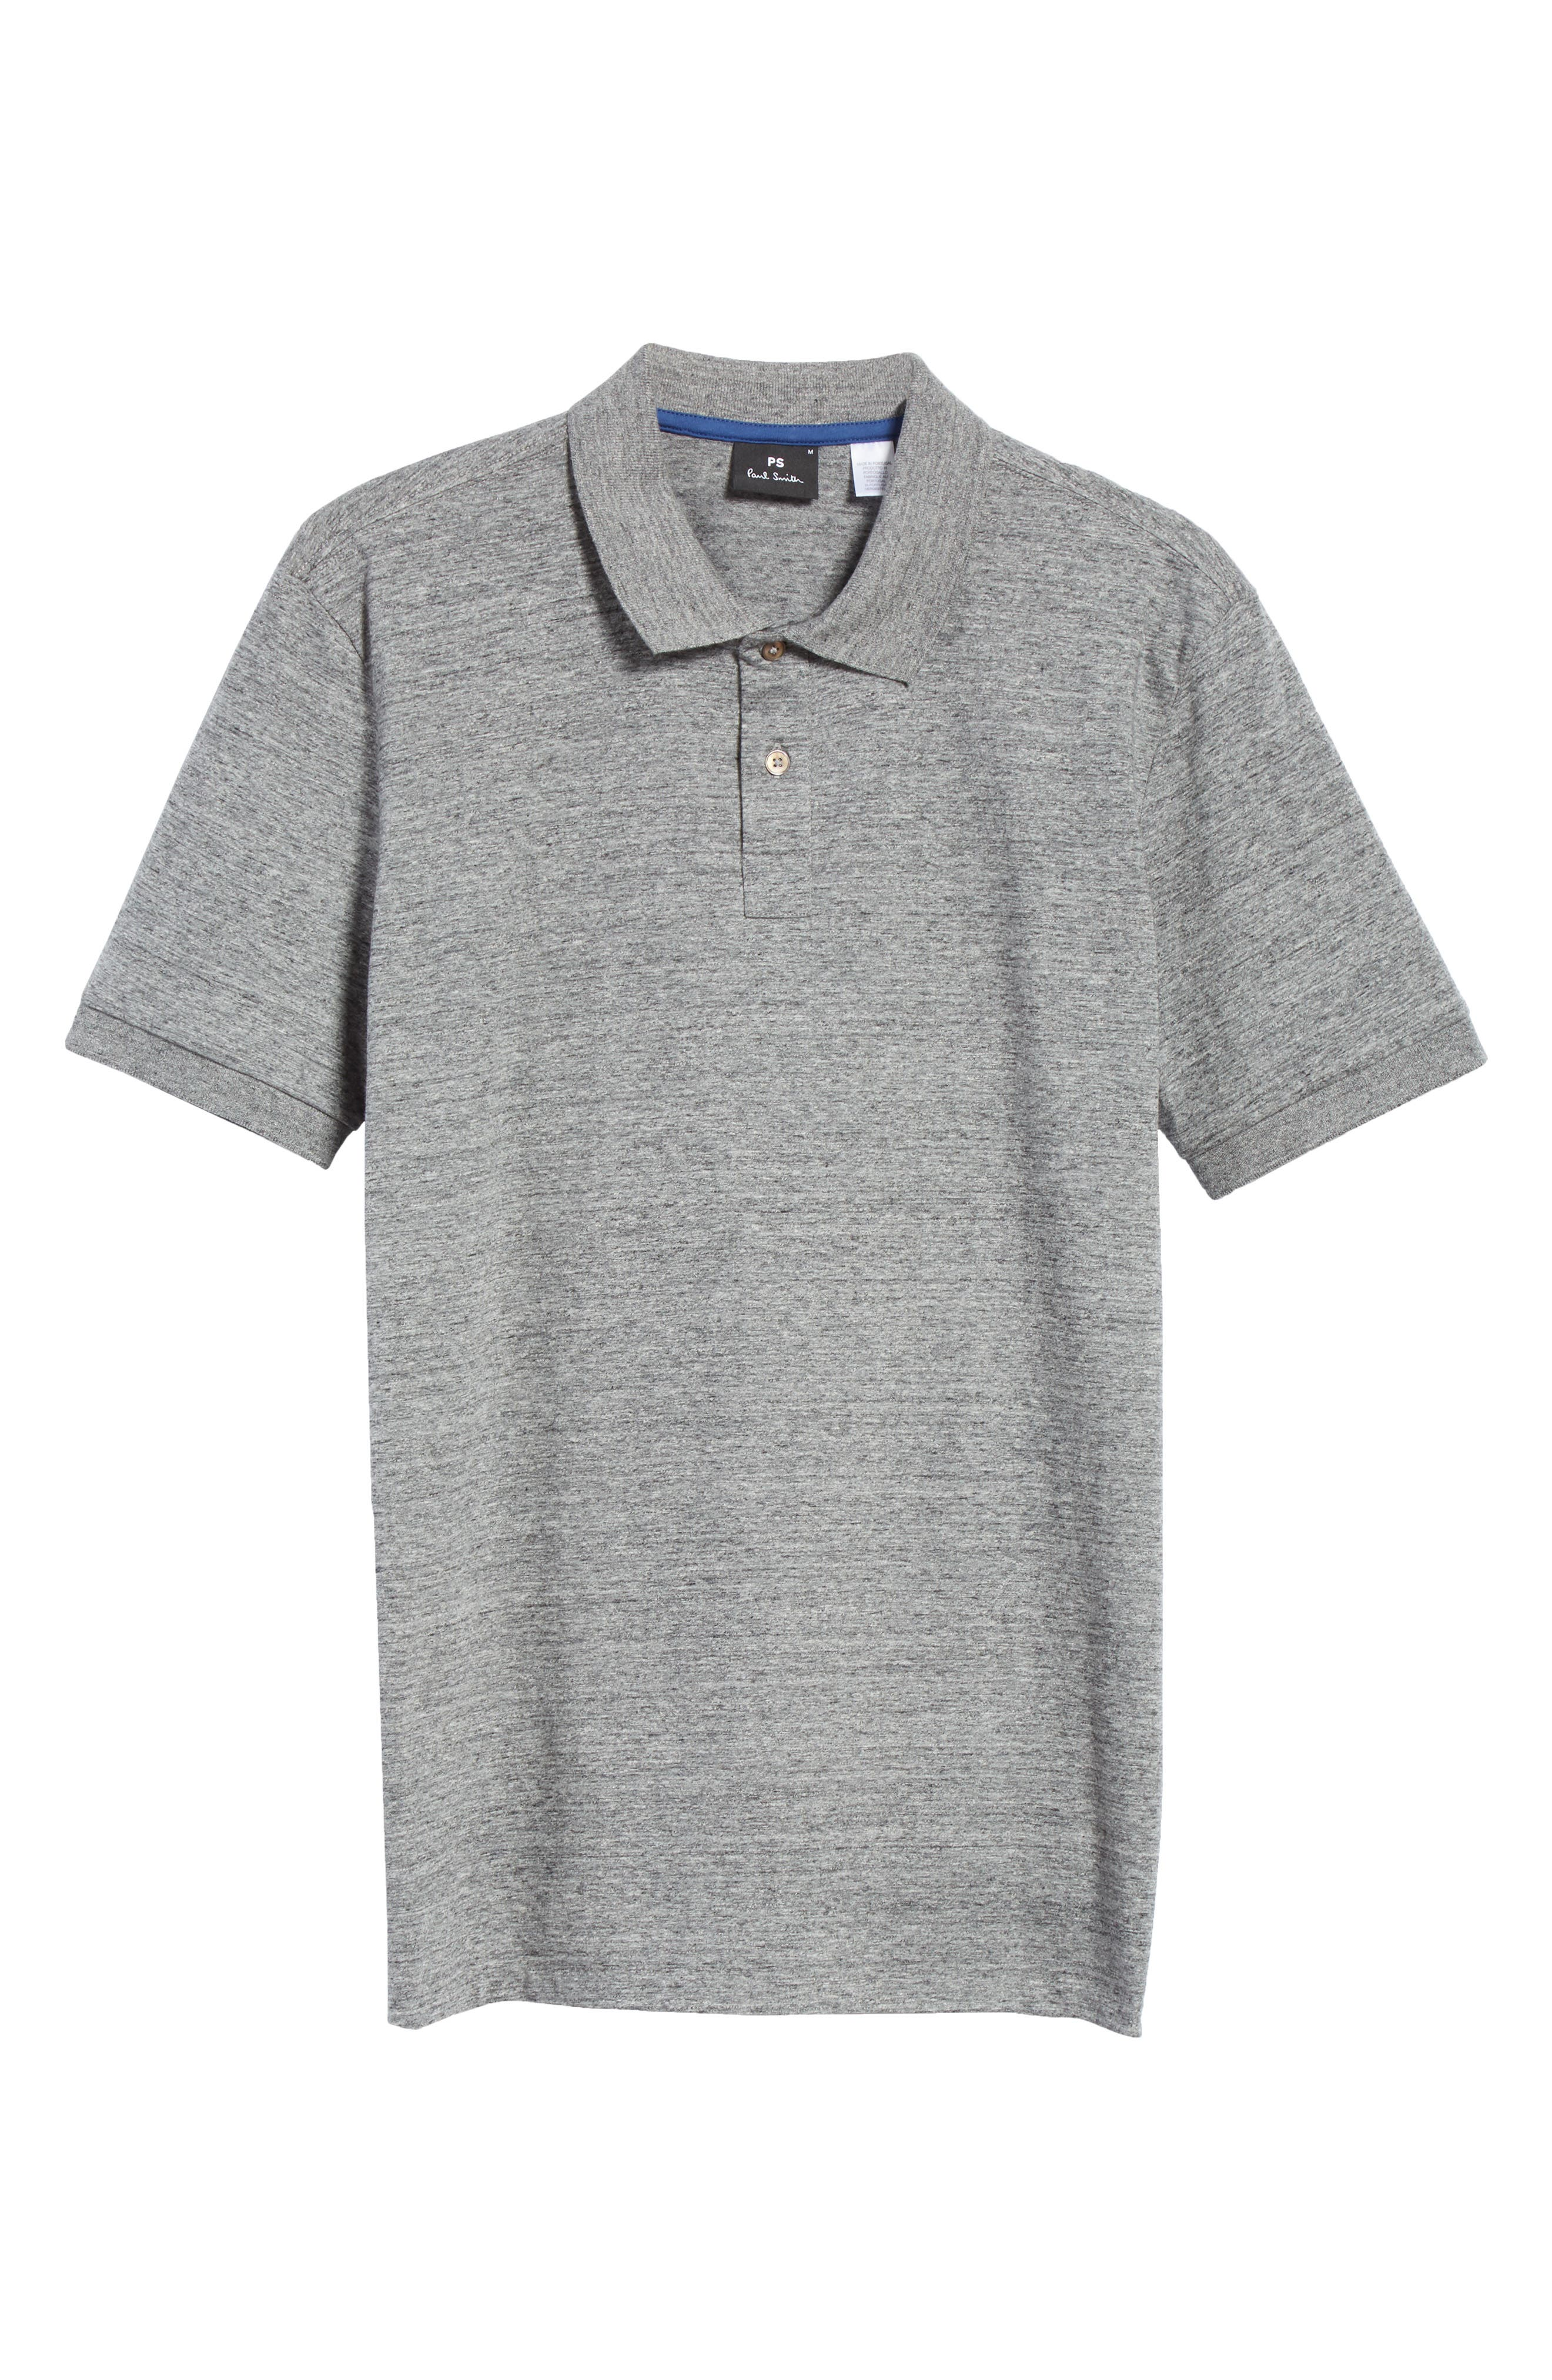 Jersey Polo,                         Main,                         color, Grey Melange